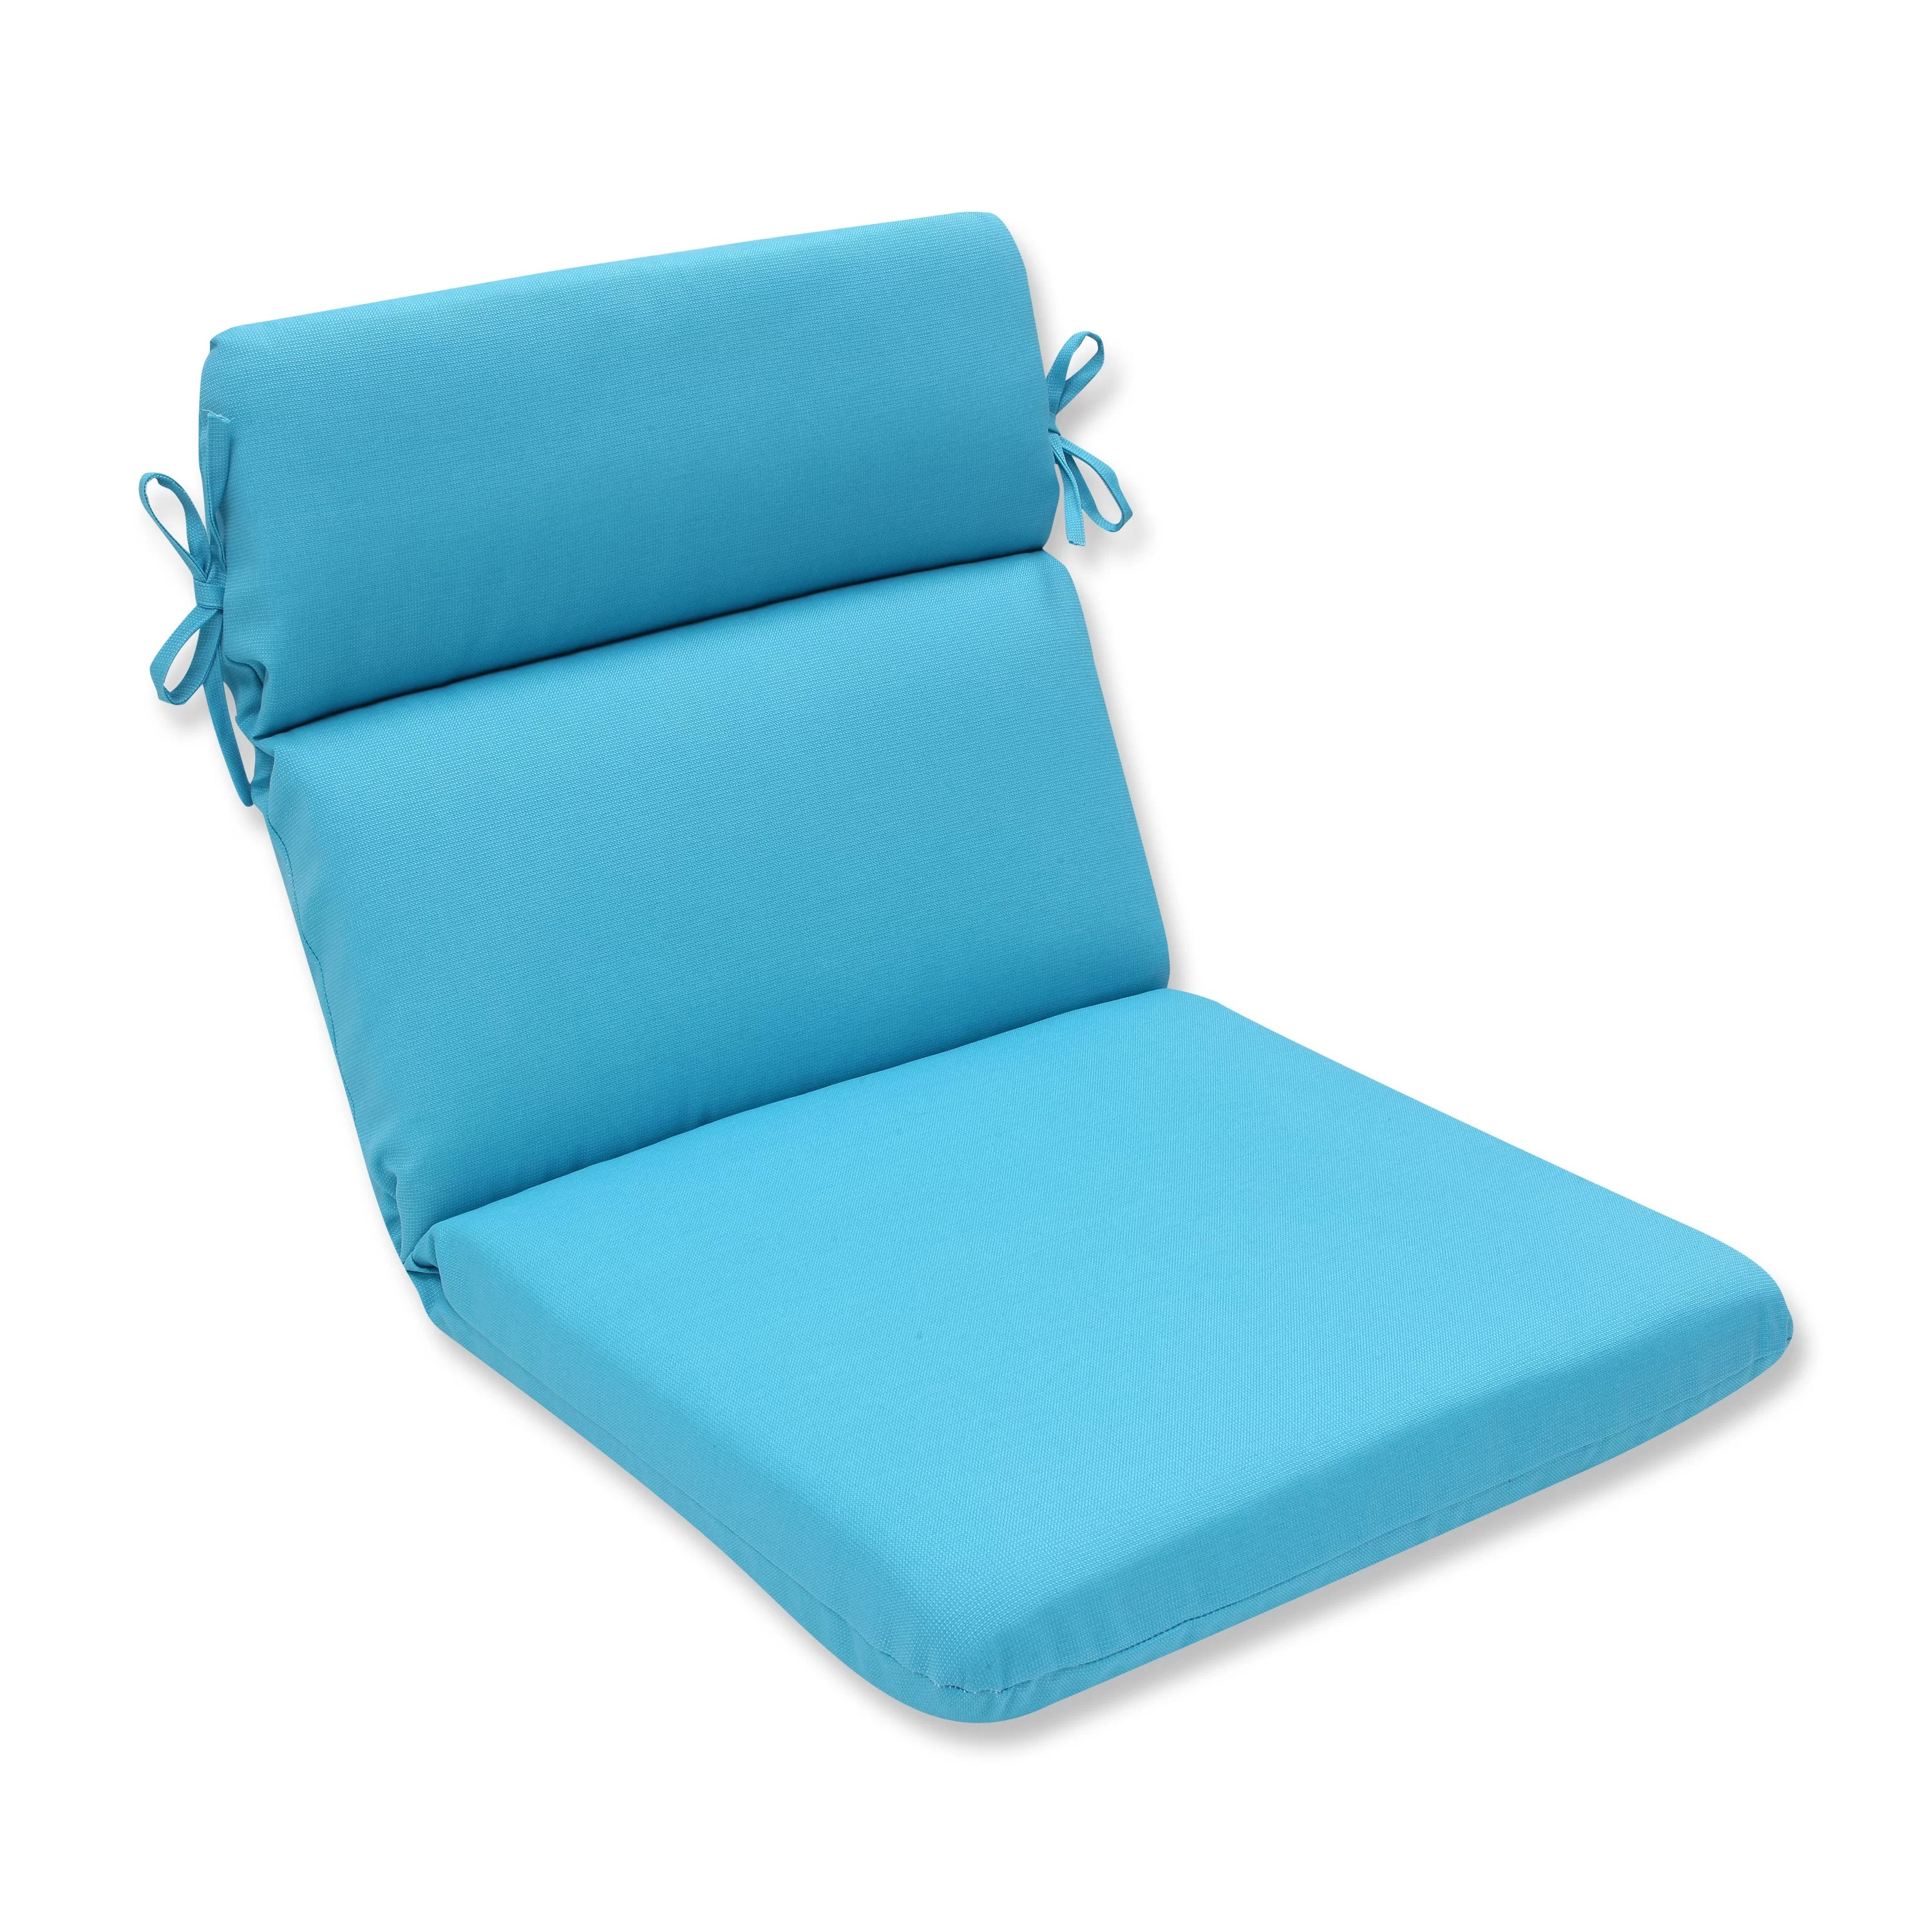 Outdoor Lounge Chair Cushions Pillow Perfect Veranda Outdoor Lounge Chair Cushion Wayfair